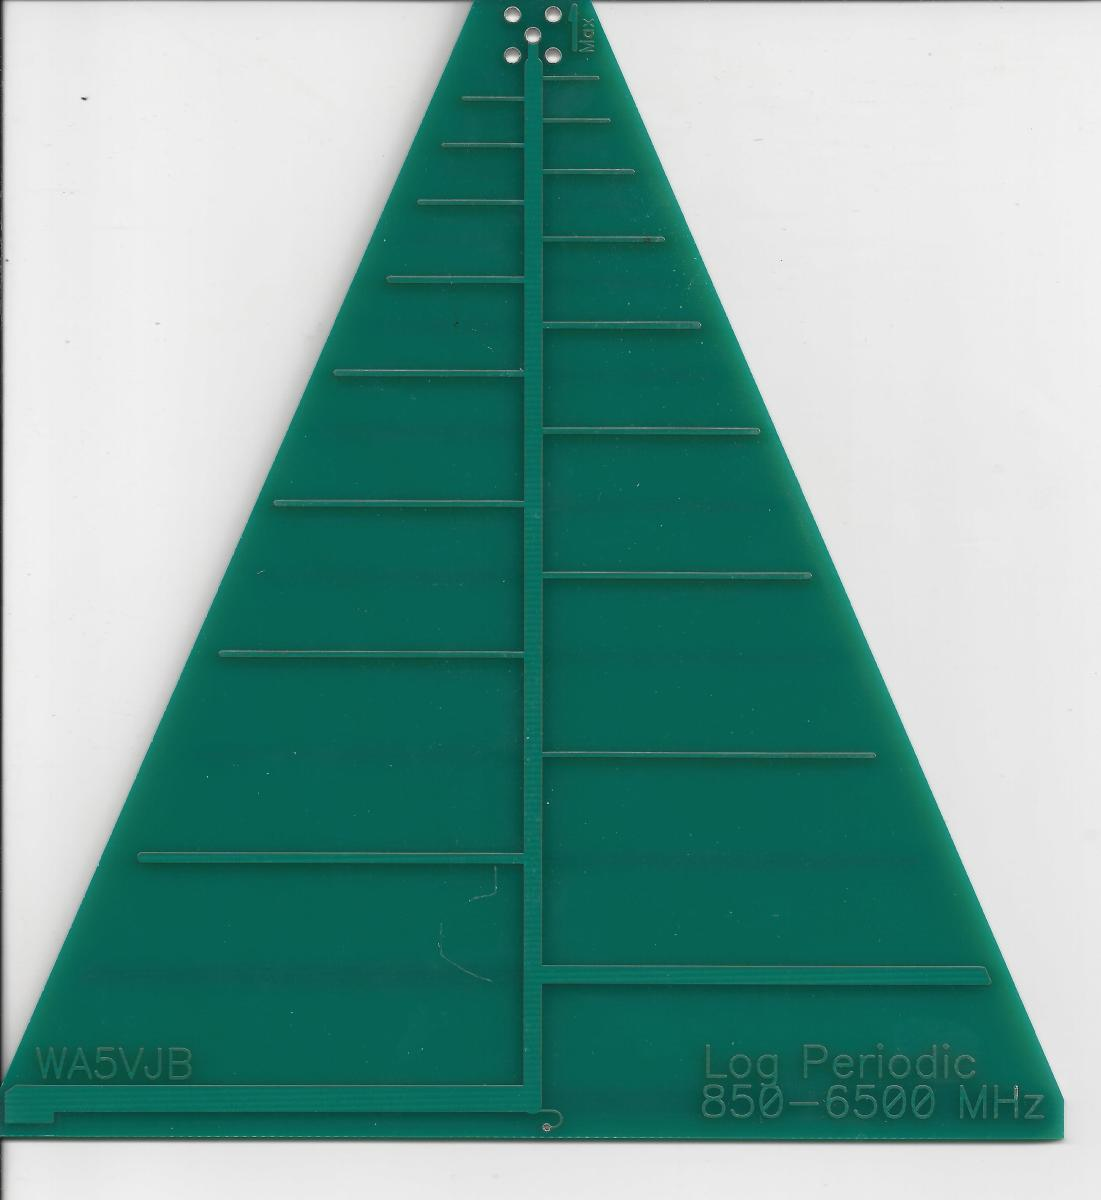 A printed circuit board log periodic antenna